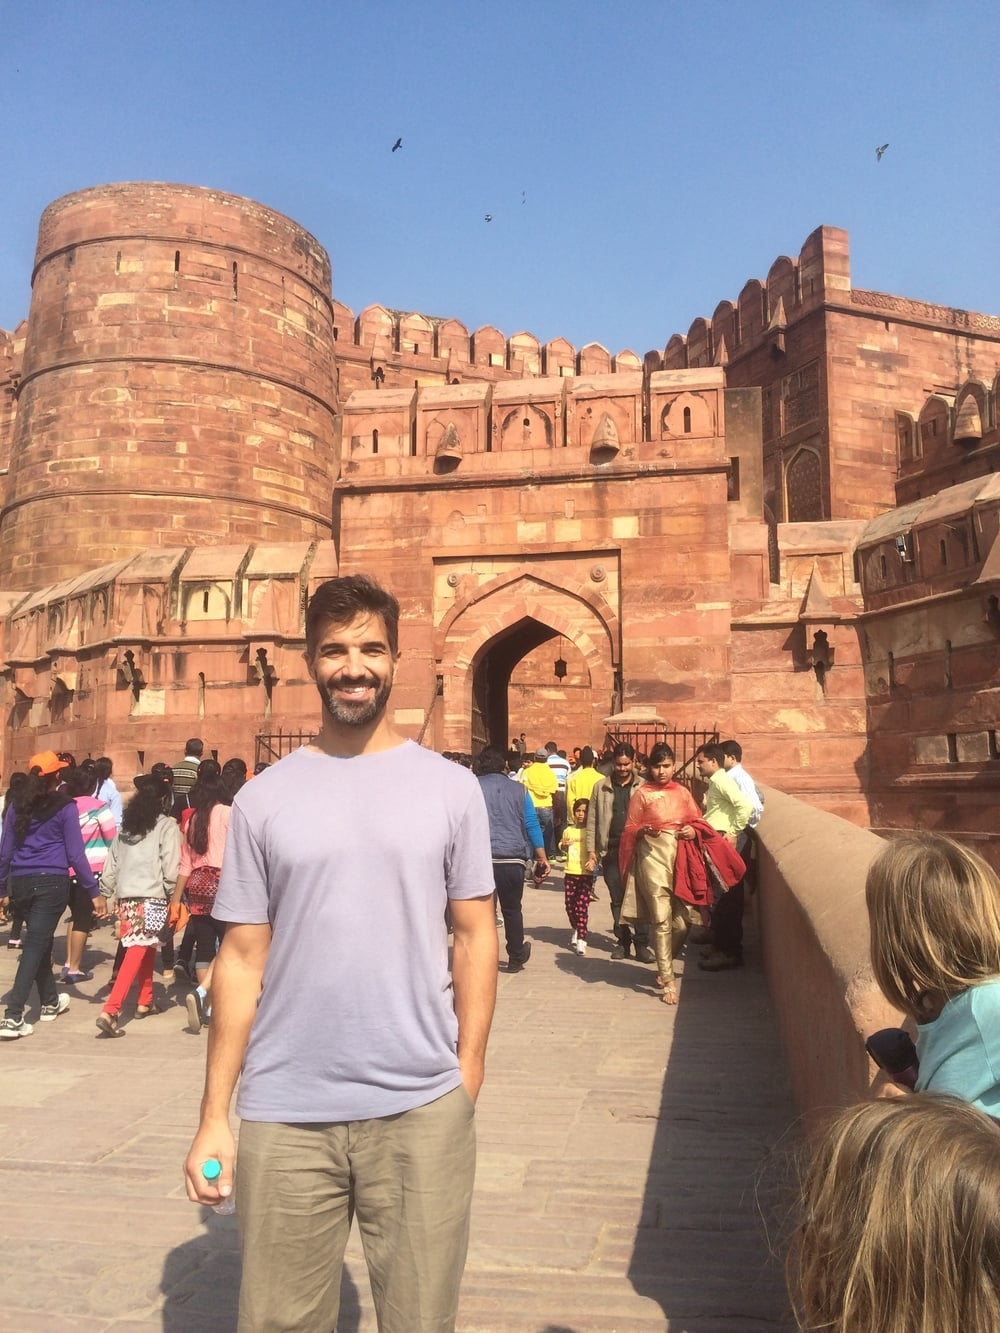 Anthony outside the Agra Fort. With a moat, a drawbridge, and narrow openings in which the guards could shoot arrows, the Fort was impenetrable, until the British came along with its guns and cannons!